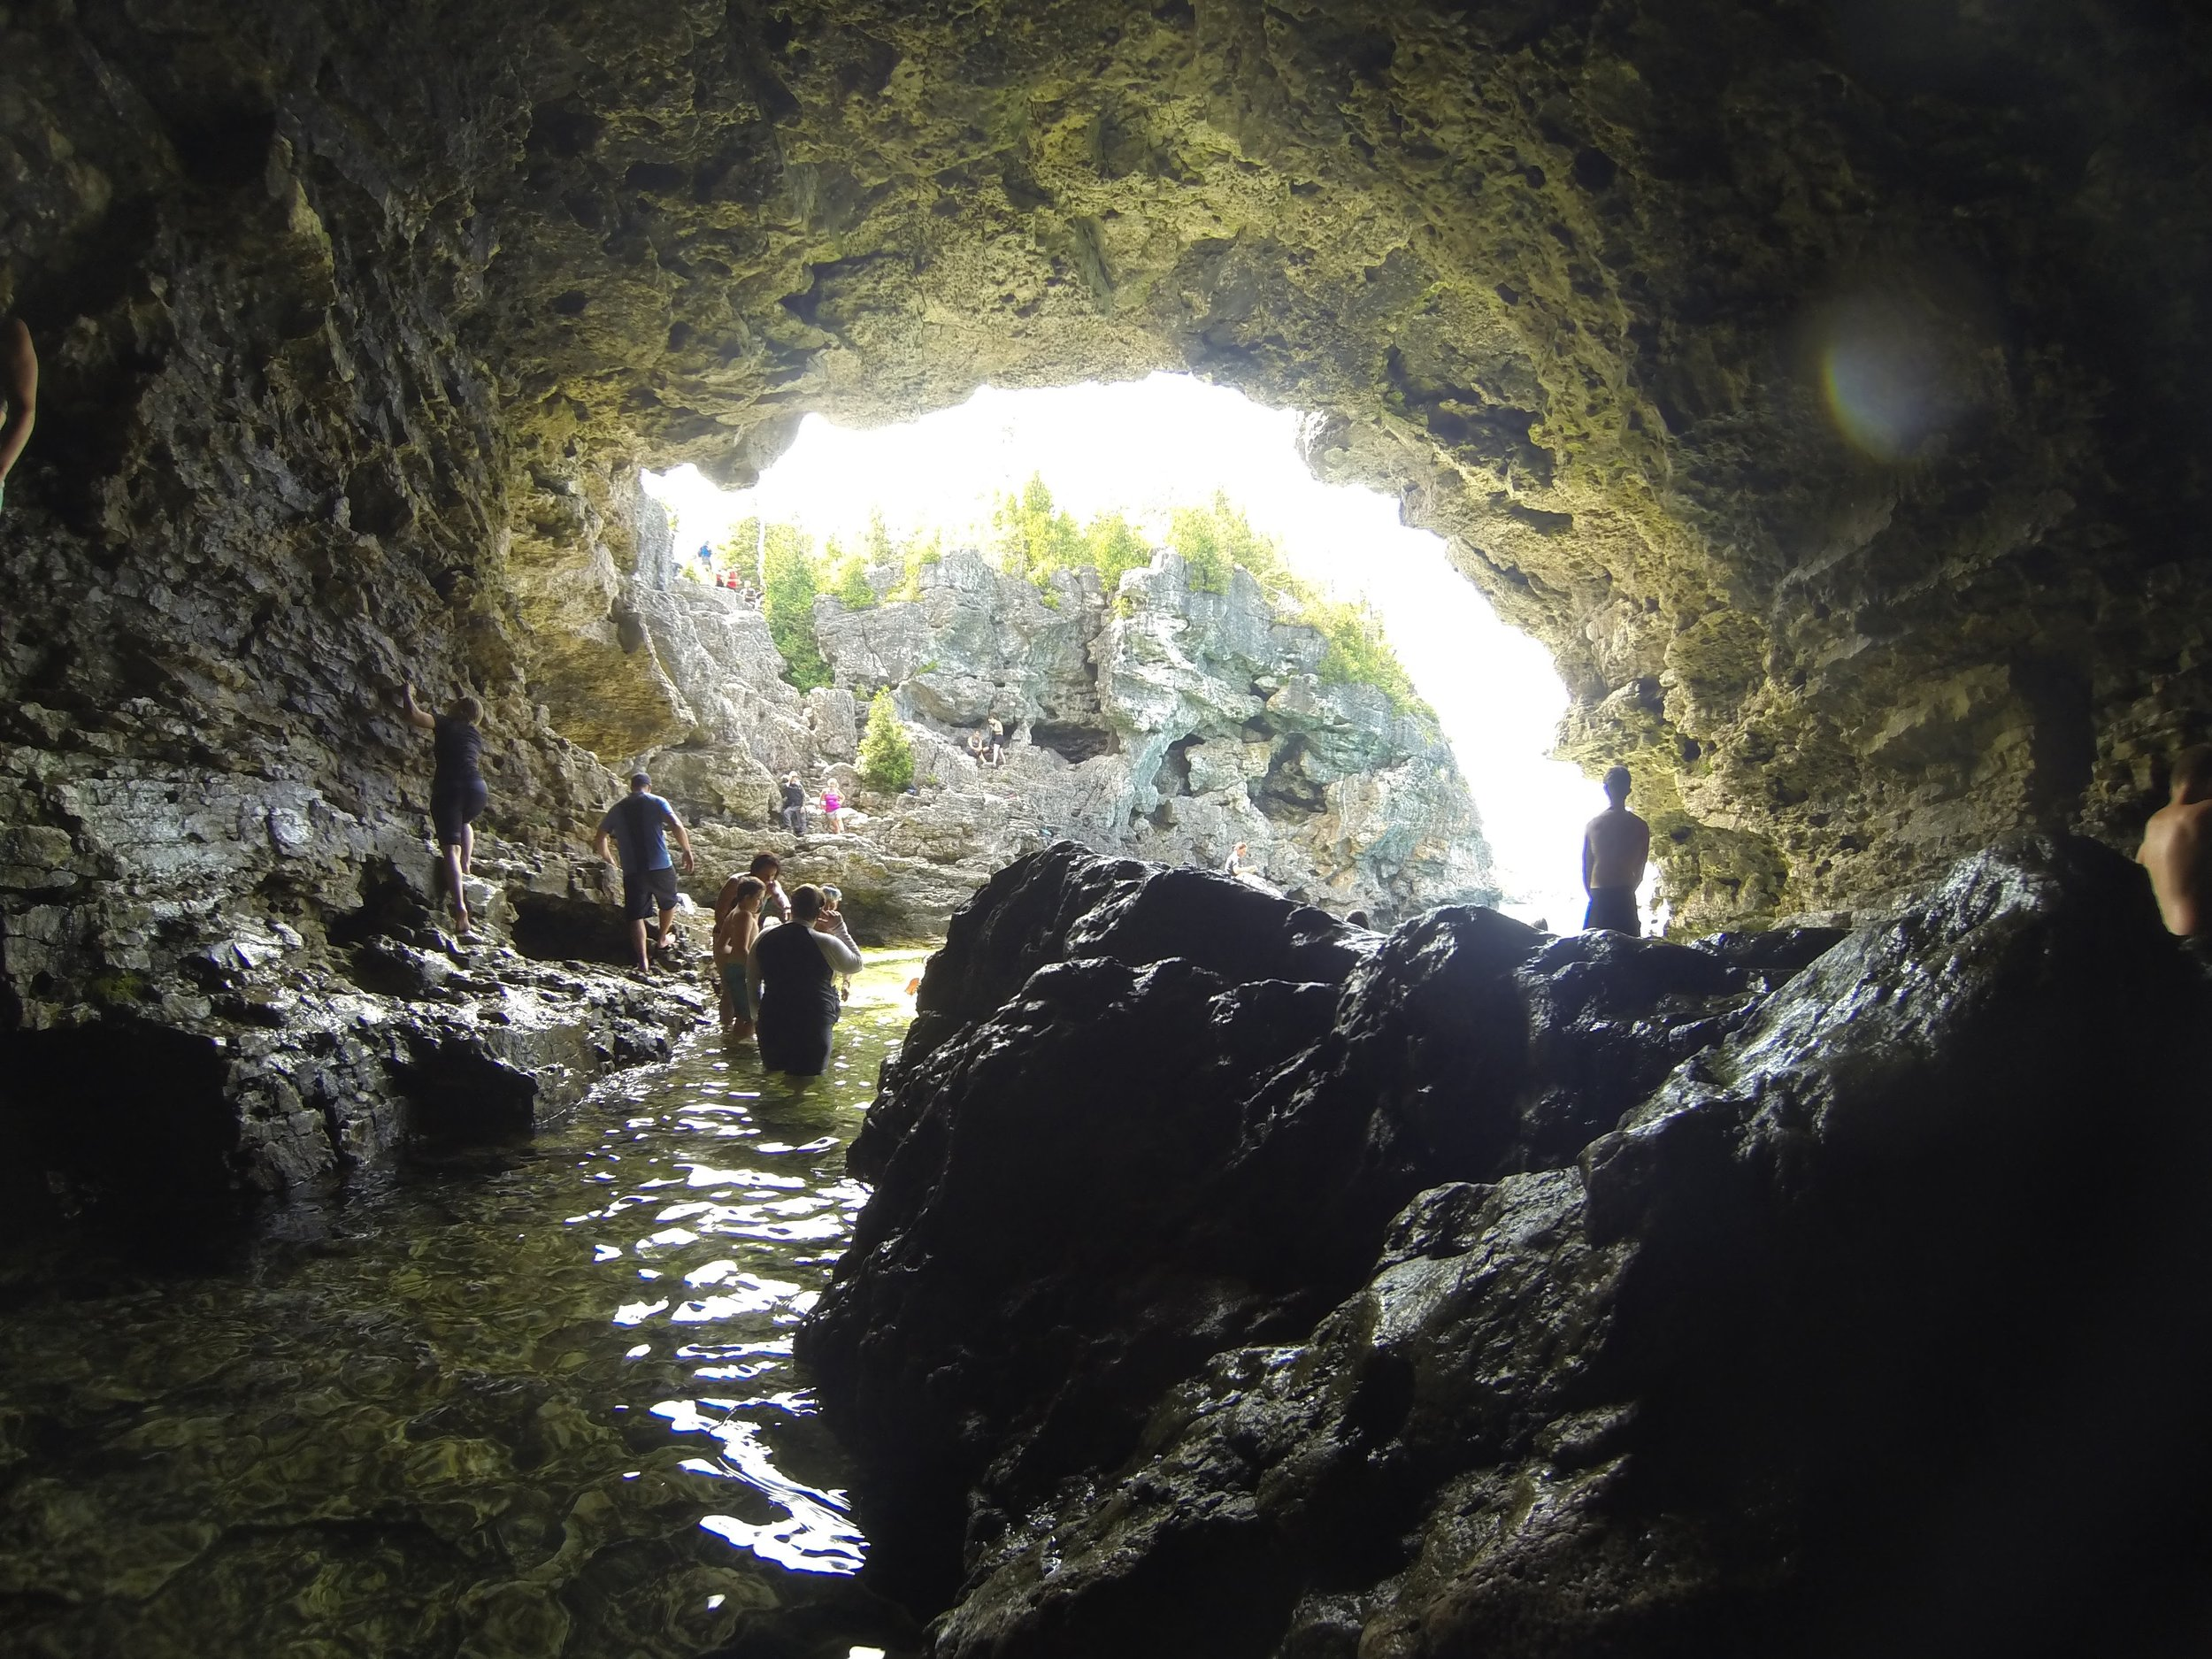 Inside the cave at the grotto